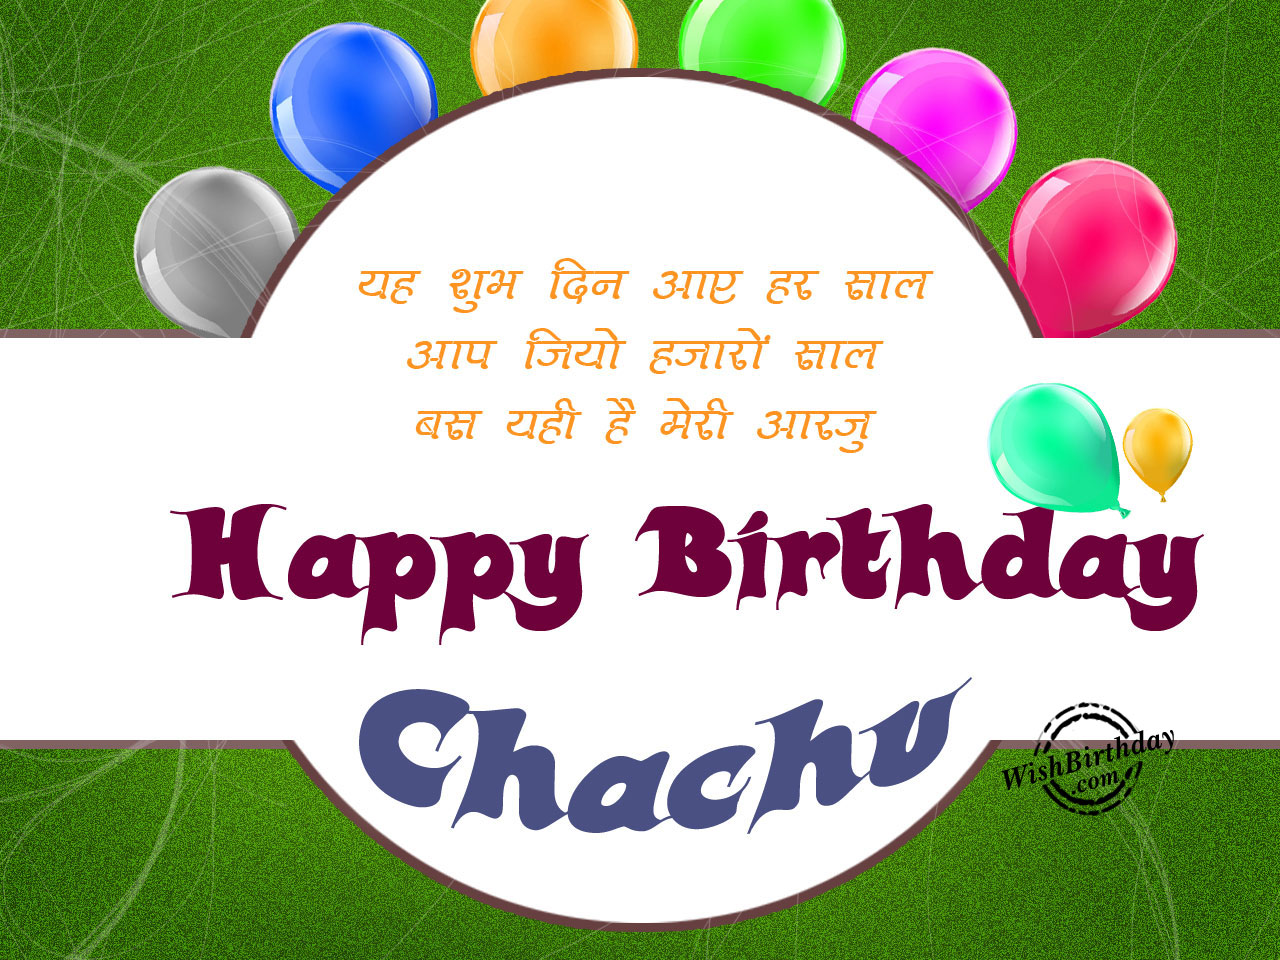 happy birthday chachu wallpaper ; Ye-shubh-din-aaye-har-saal